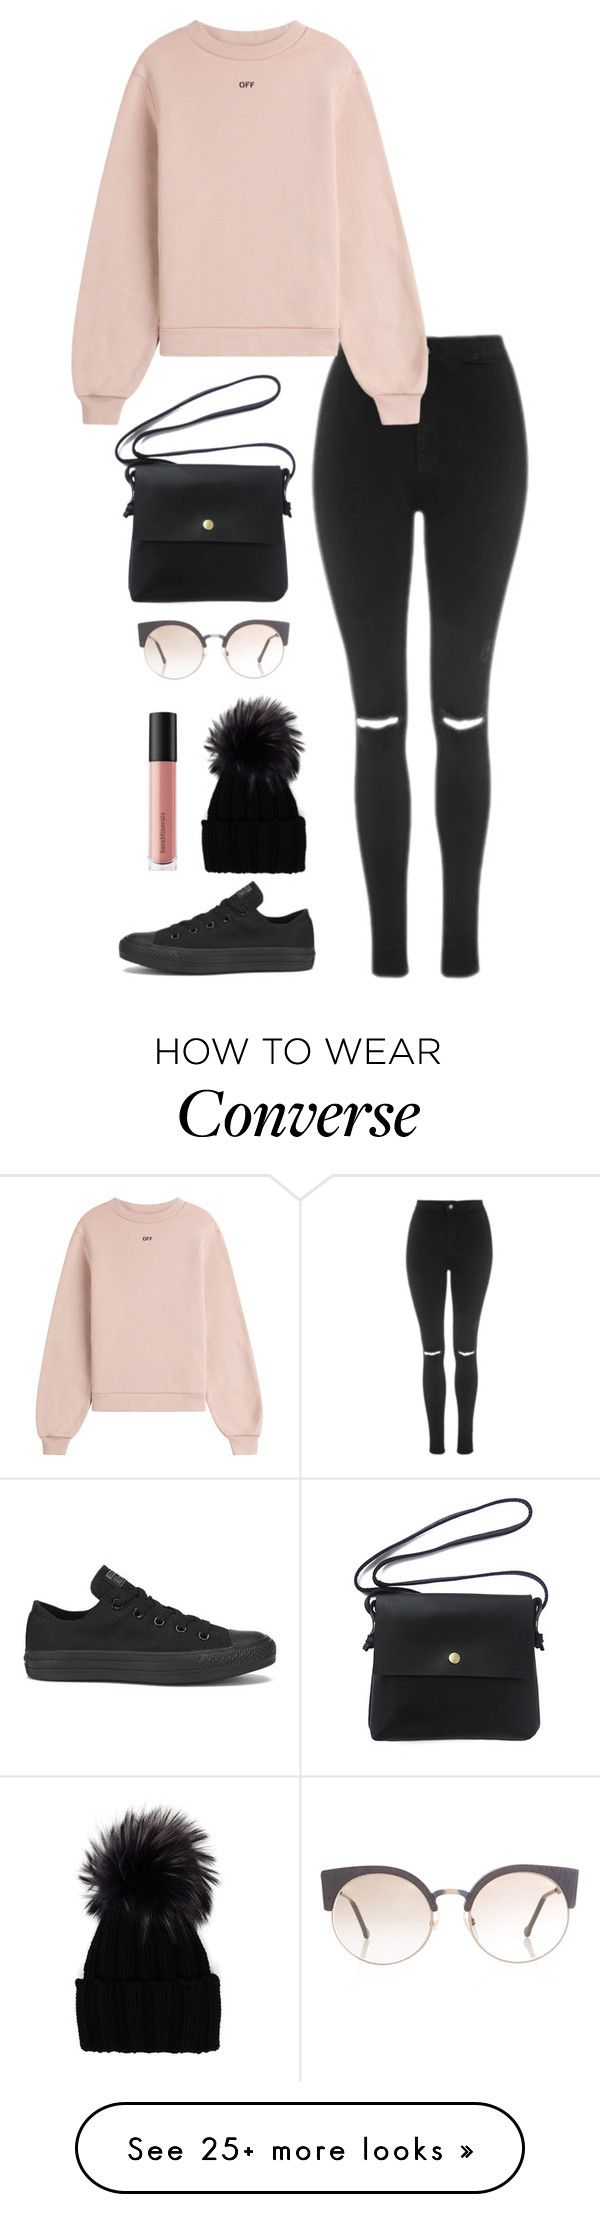 """Untitled #314"" by fofo-moon on Polyvore featuring Topshop, Off-White, Converse, RetroSuperFuture, Inverni and Bare Escentuals"